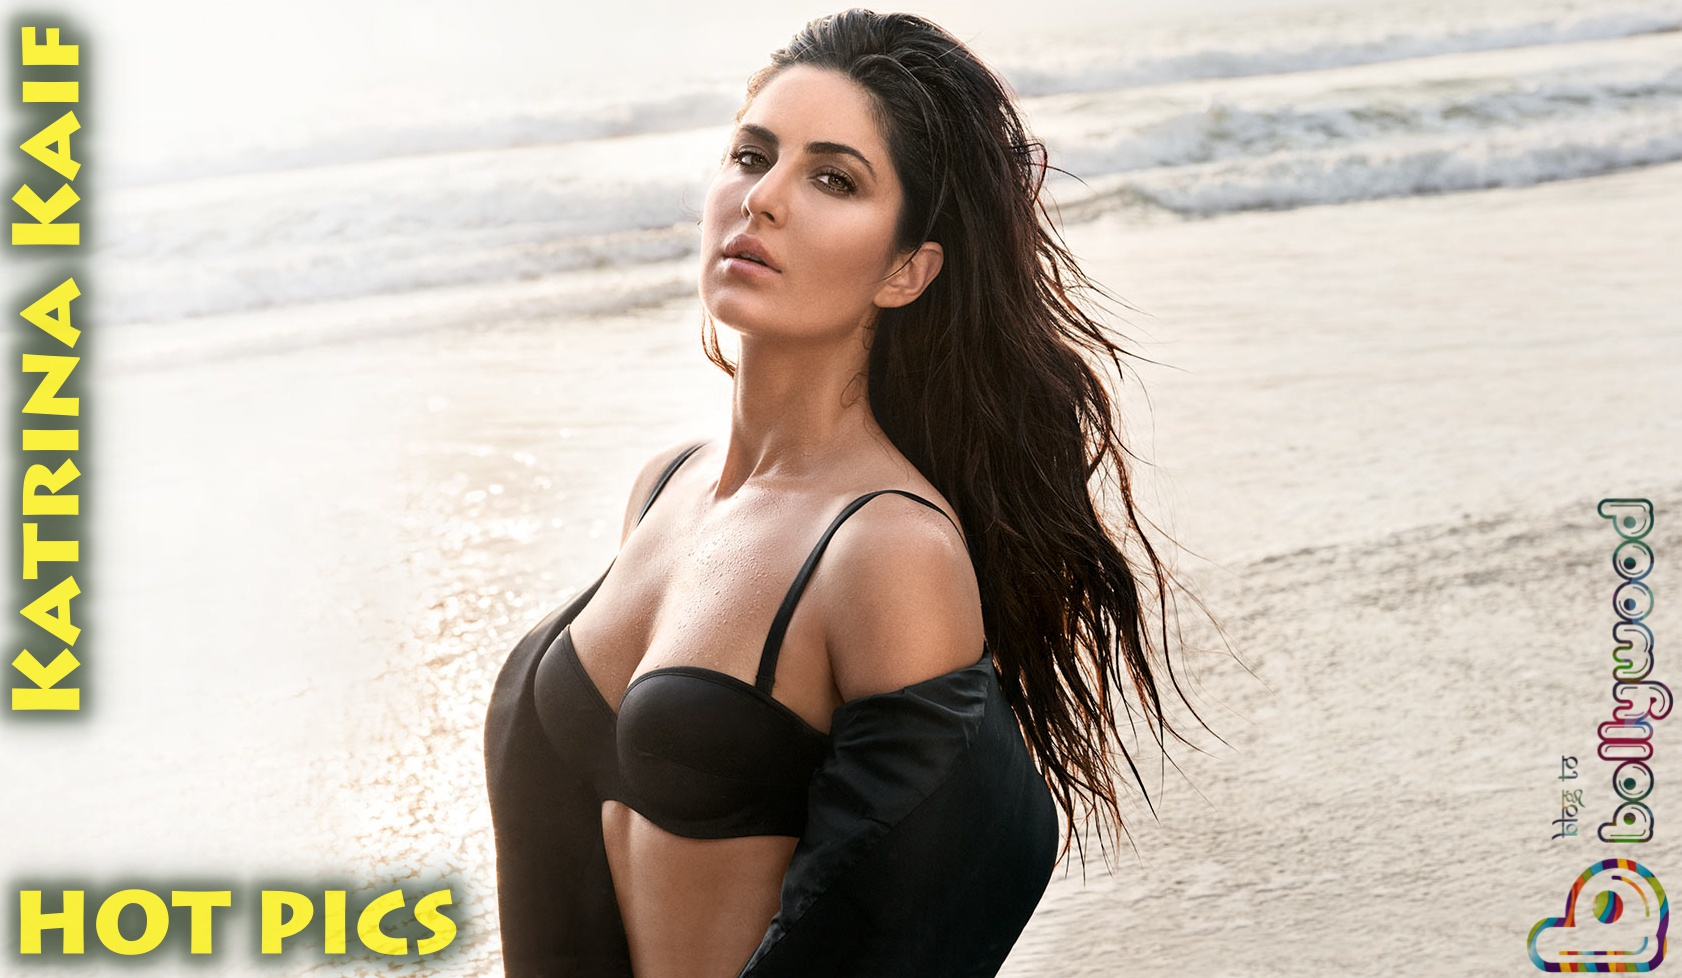 Katrina Kaif Hot Pics 11 Smoking Hot And Sexy Photos Of -3444